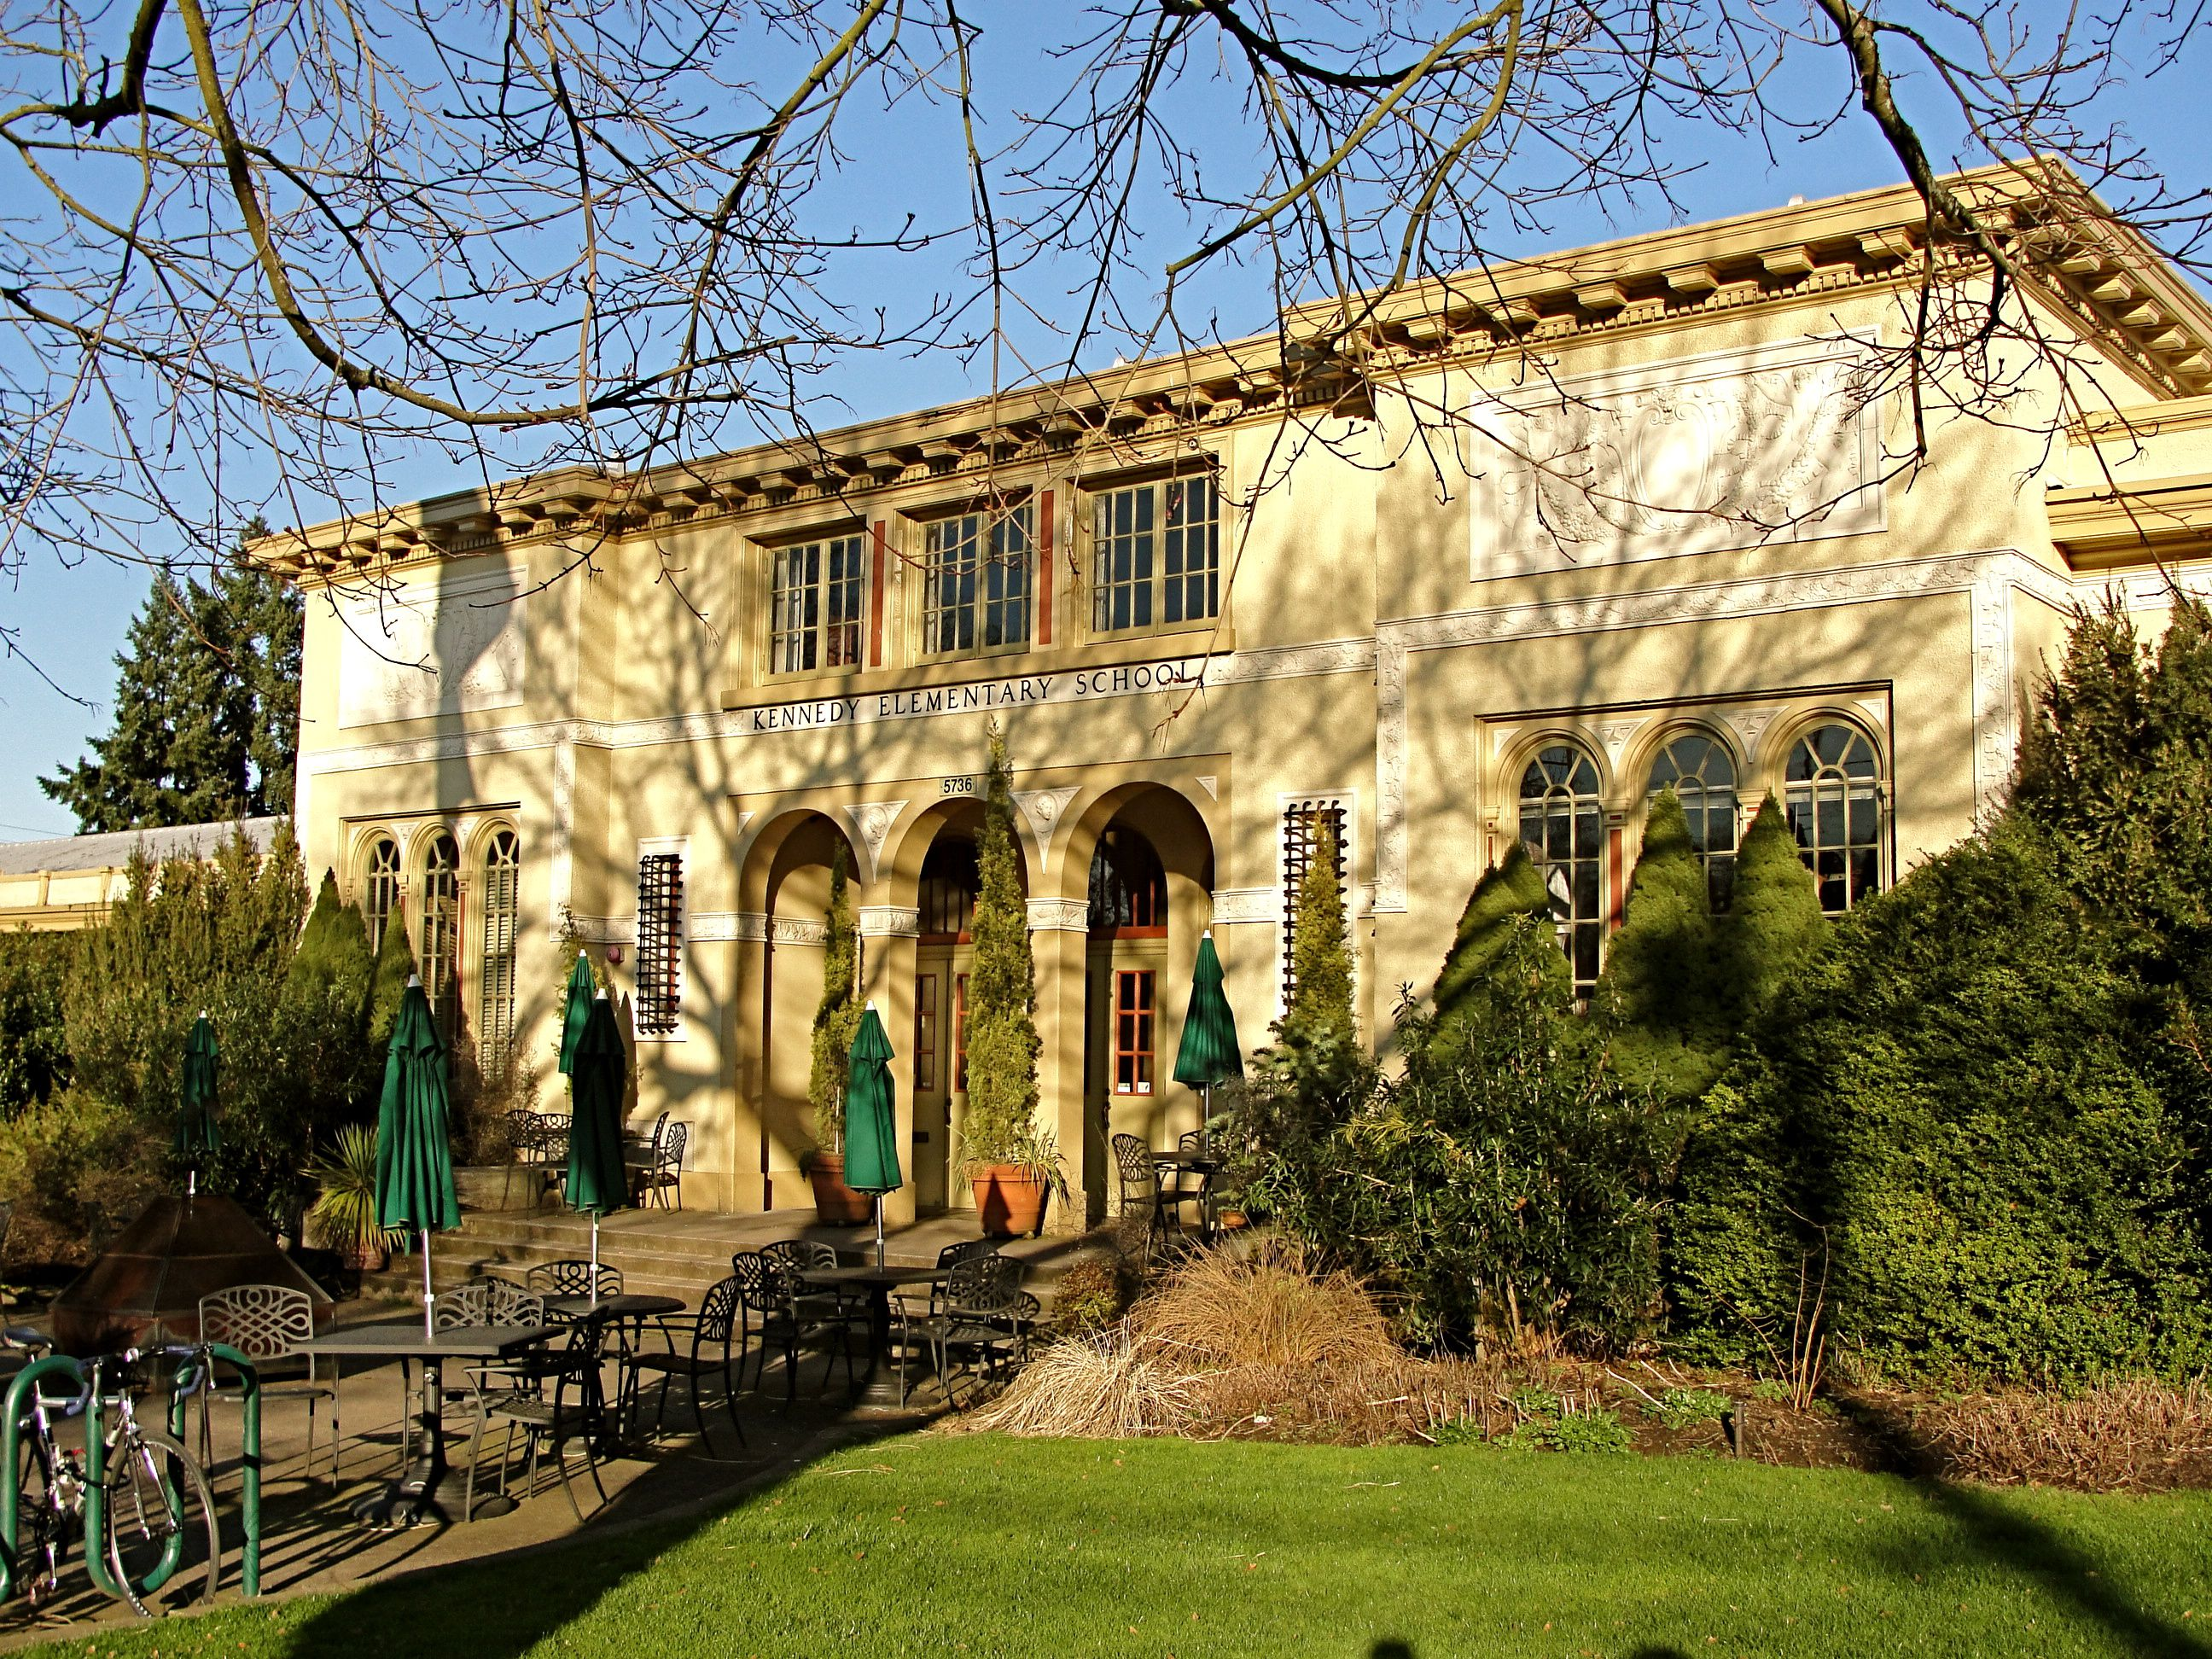 Exterior of the McMenamins Kennedy School with green umbrellas out front